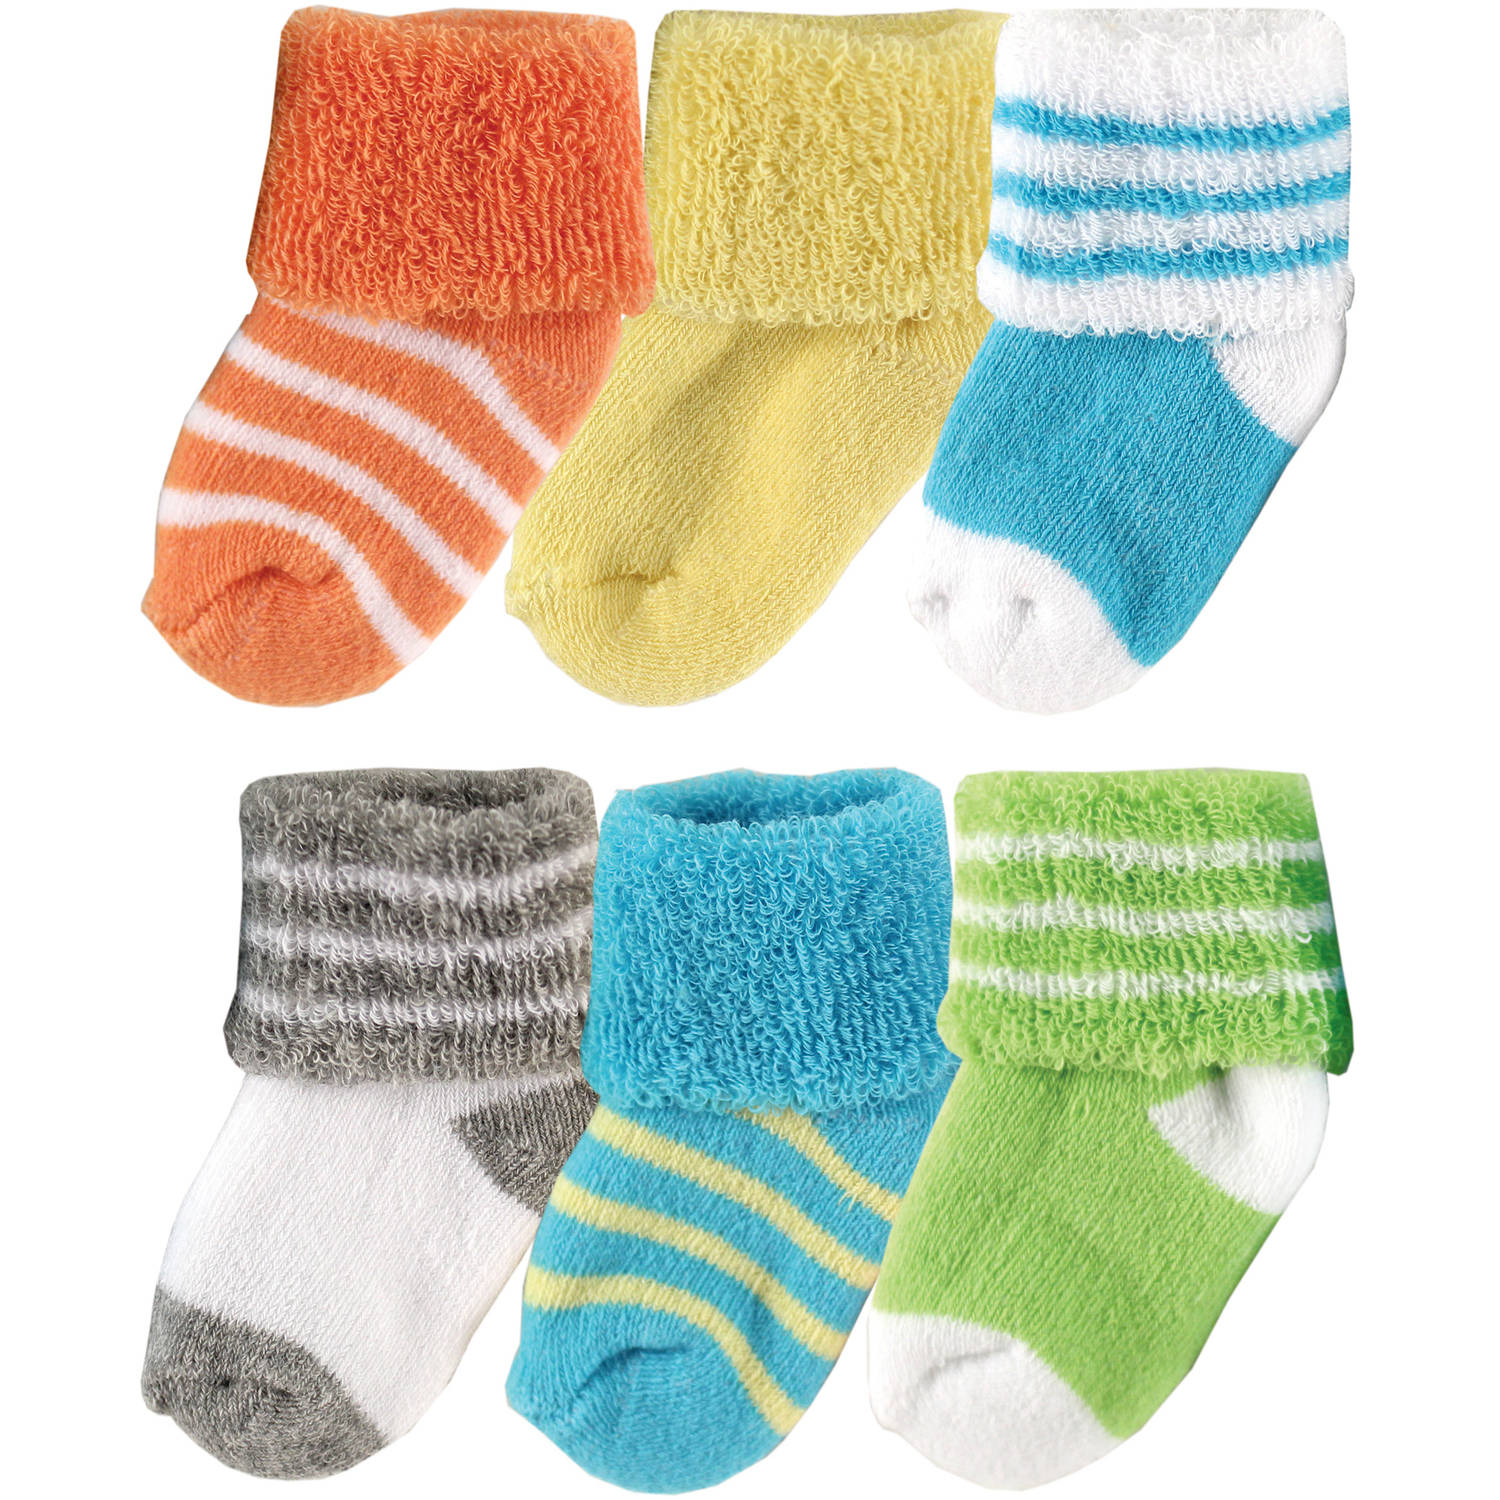 Luvable Friends Newborn Baby Neutral Socks in Washbag 6-Pack